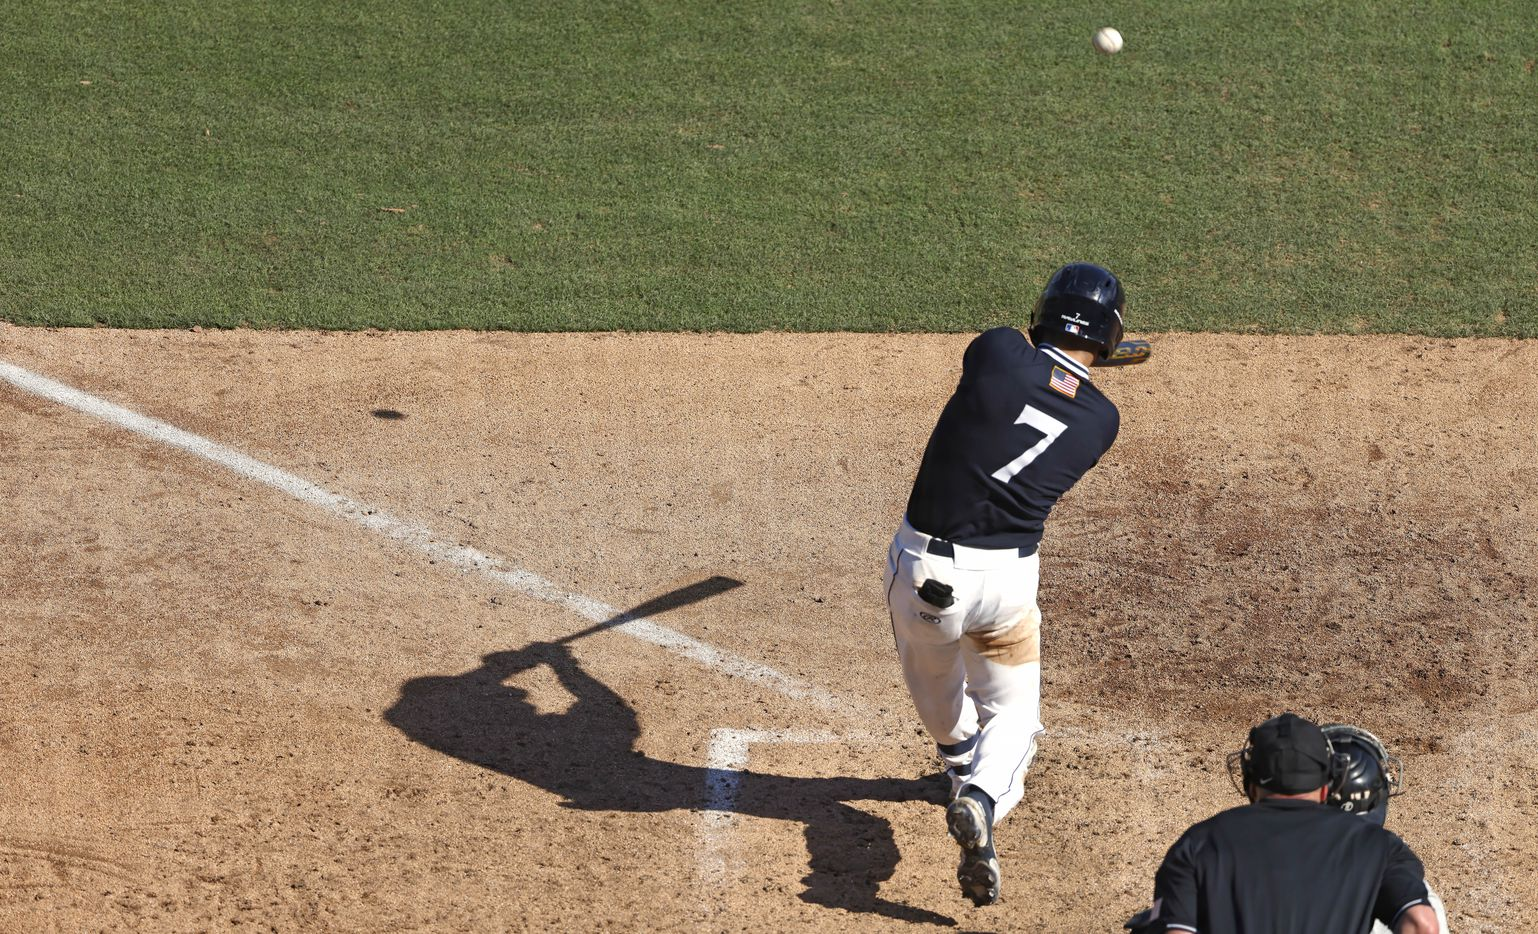 Dallas Baptist's Ryan Wrobleski (7) hits a two-run home run against Oregon St. in the sixth inning during the NCAA Division I Baseball Regional Championship game in Fort Worth, Texas on June 7, 2021. (Ron Jenkins/Special Contributor)